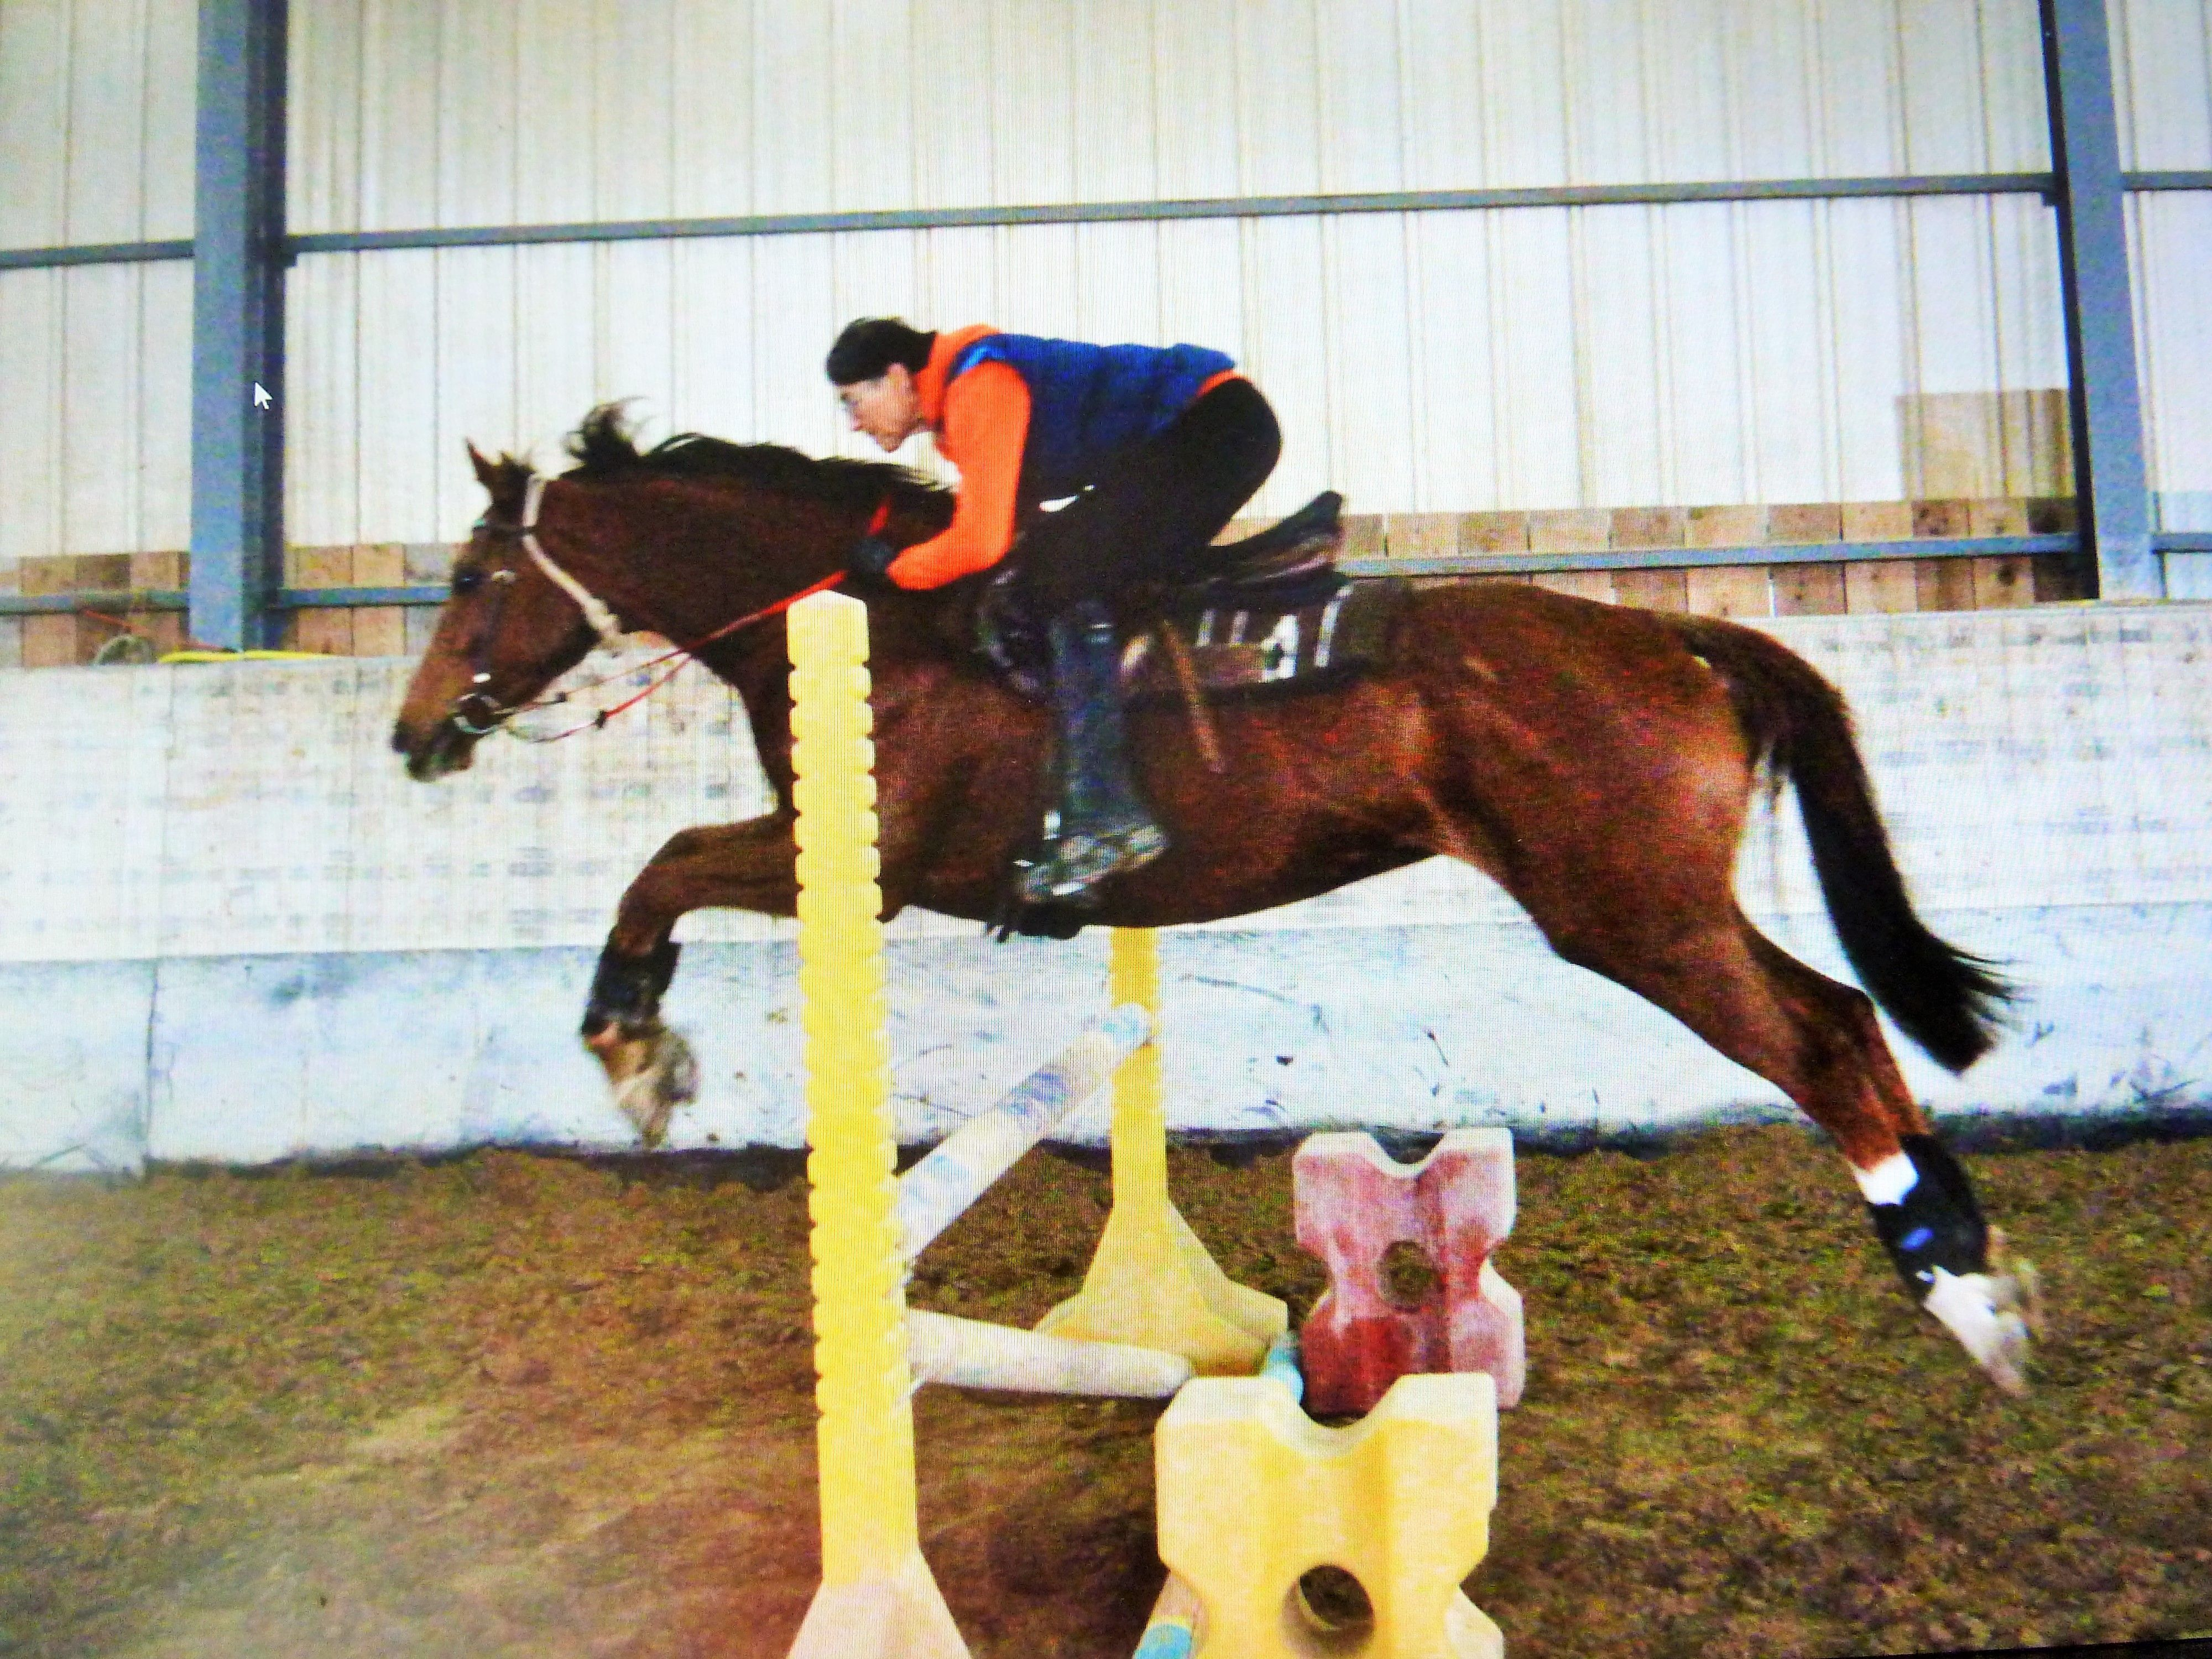 #RedHawkRupert, #GB_thoroughbred, after about a month of re-training, #gymnastics work